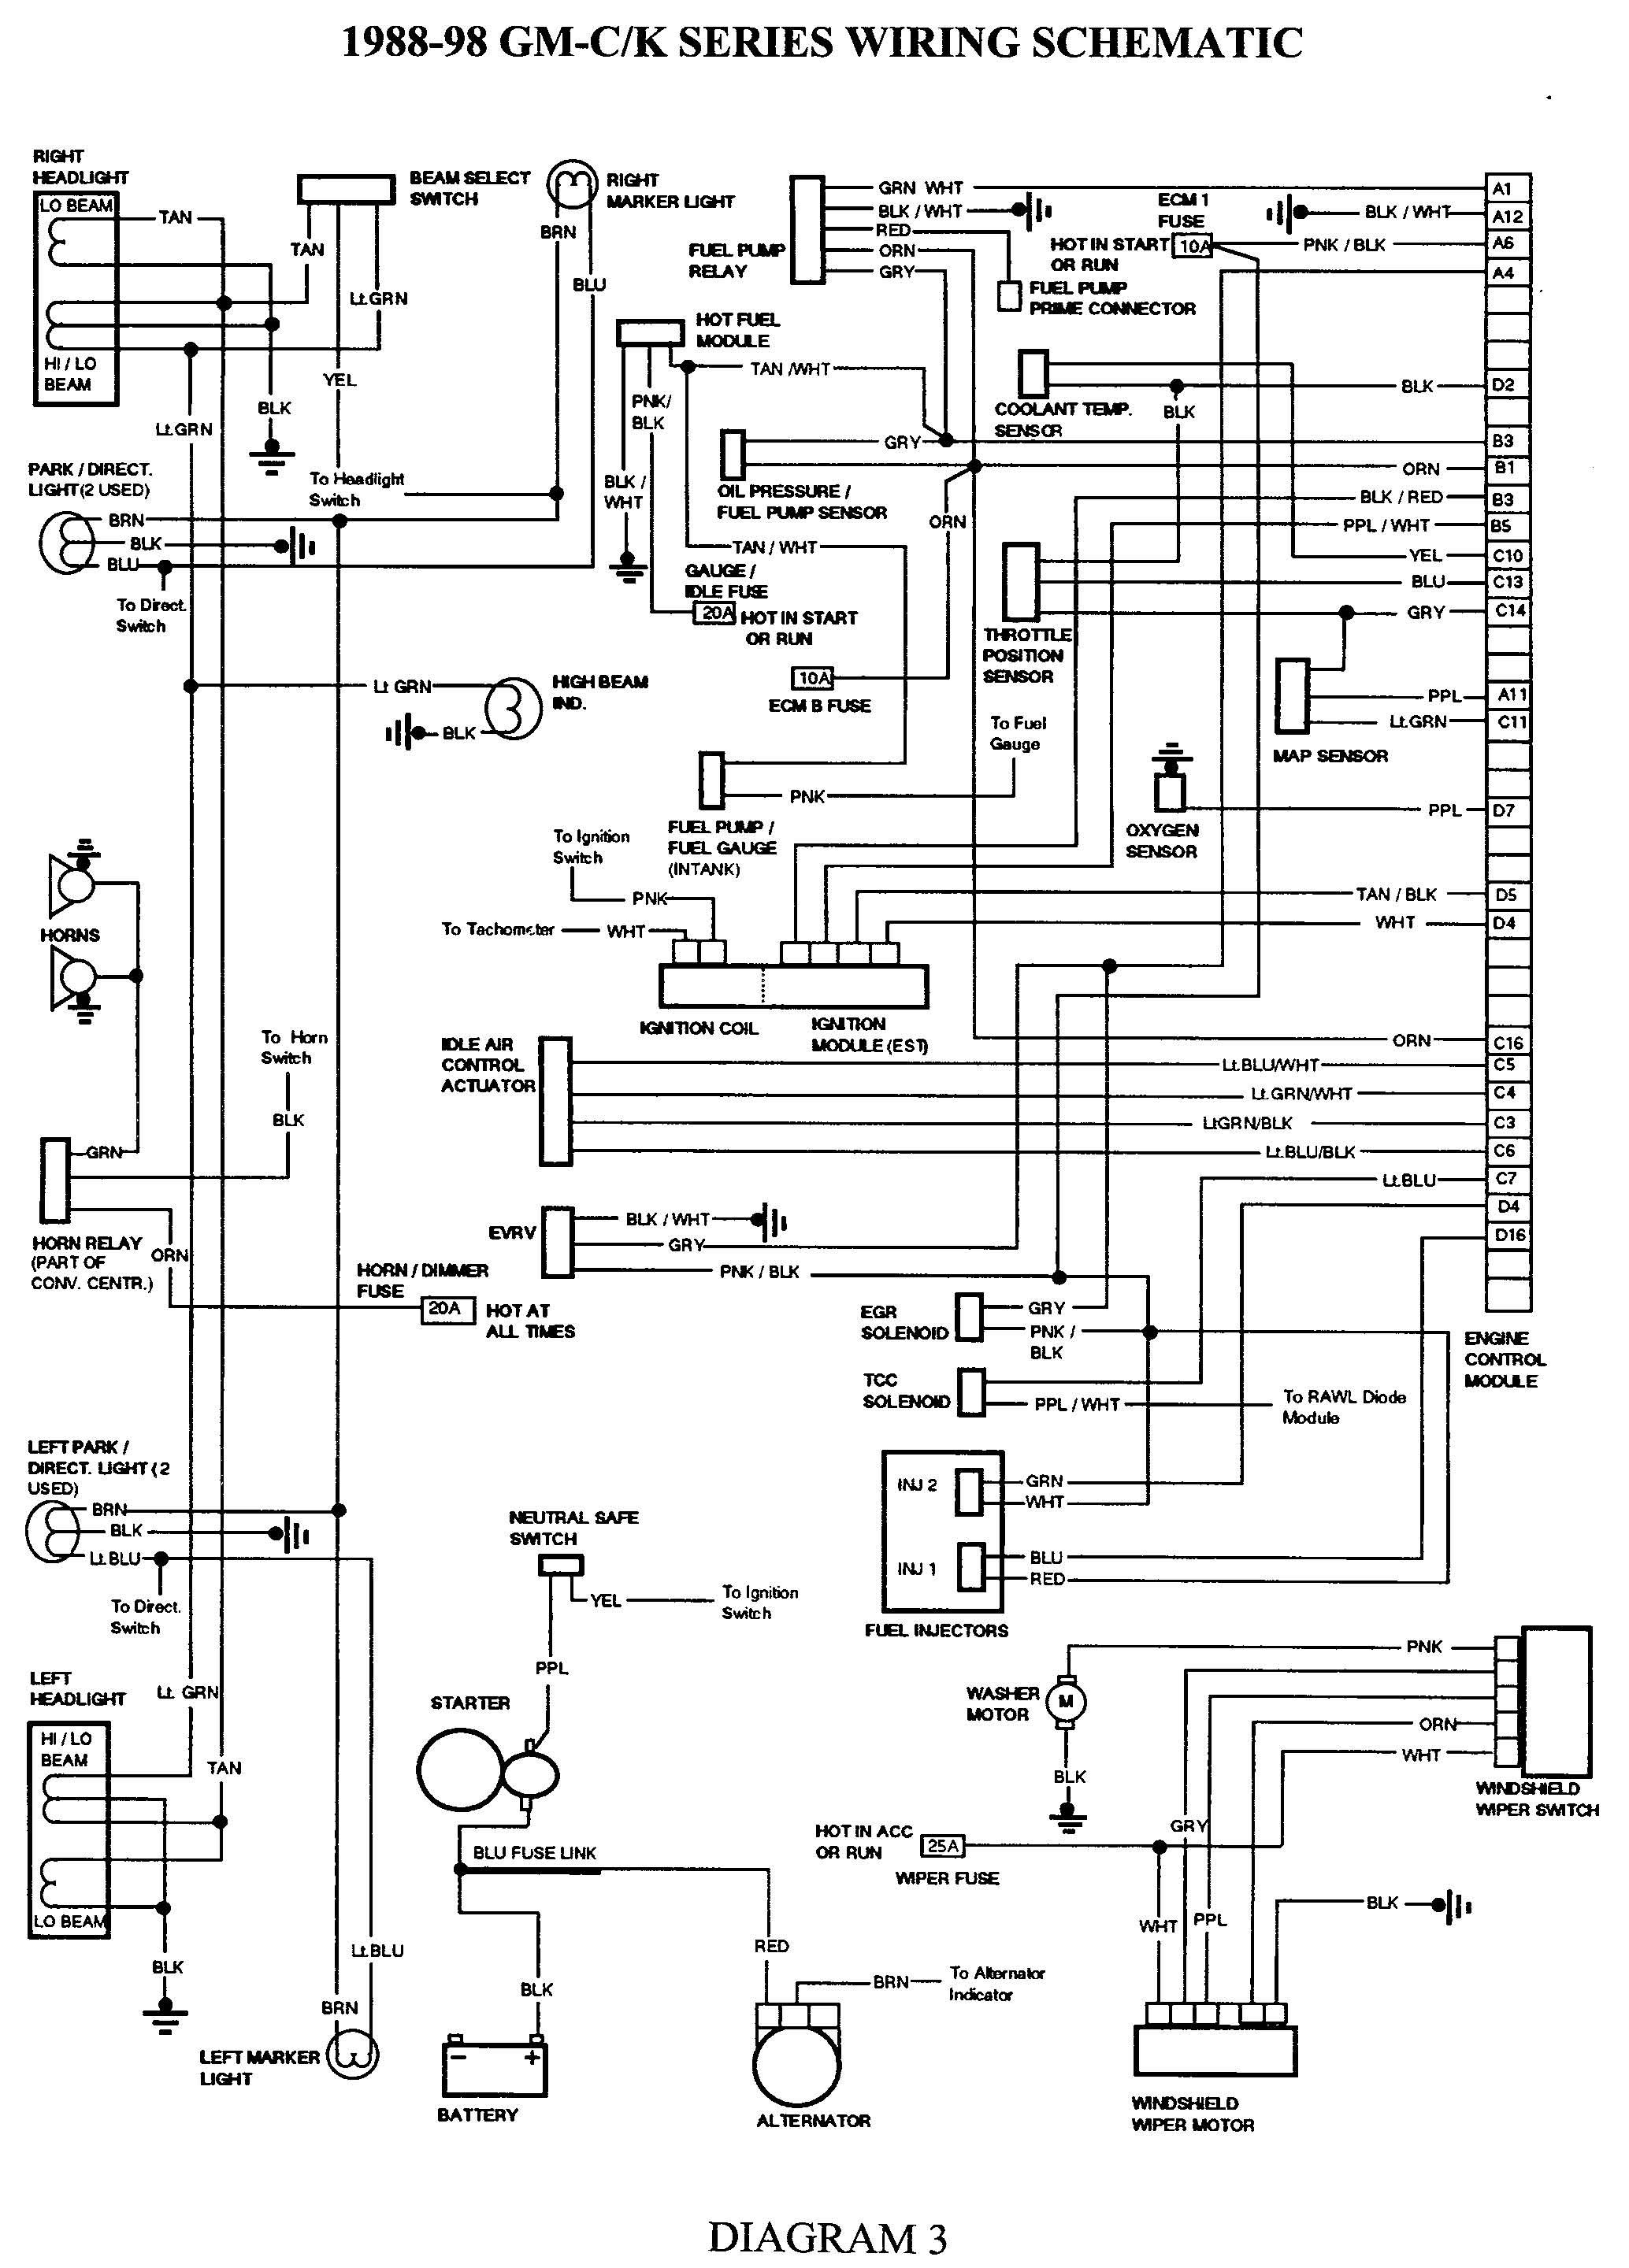 gmc truck wiring diagrams on gm wiring harness diagram 88 98 kc obs chevy power mirror wiring obs chevy wiring [ 2068 x 2880 Pixel ]